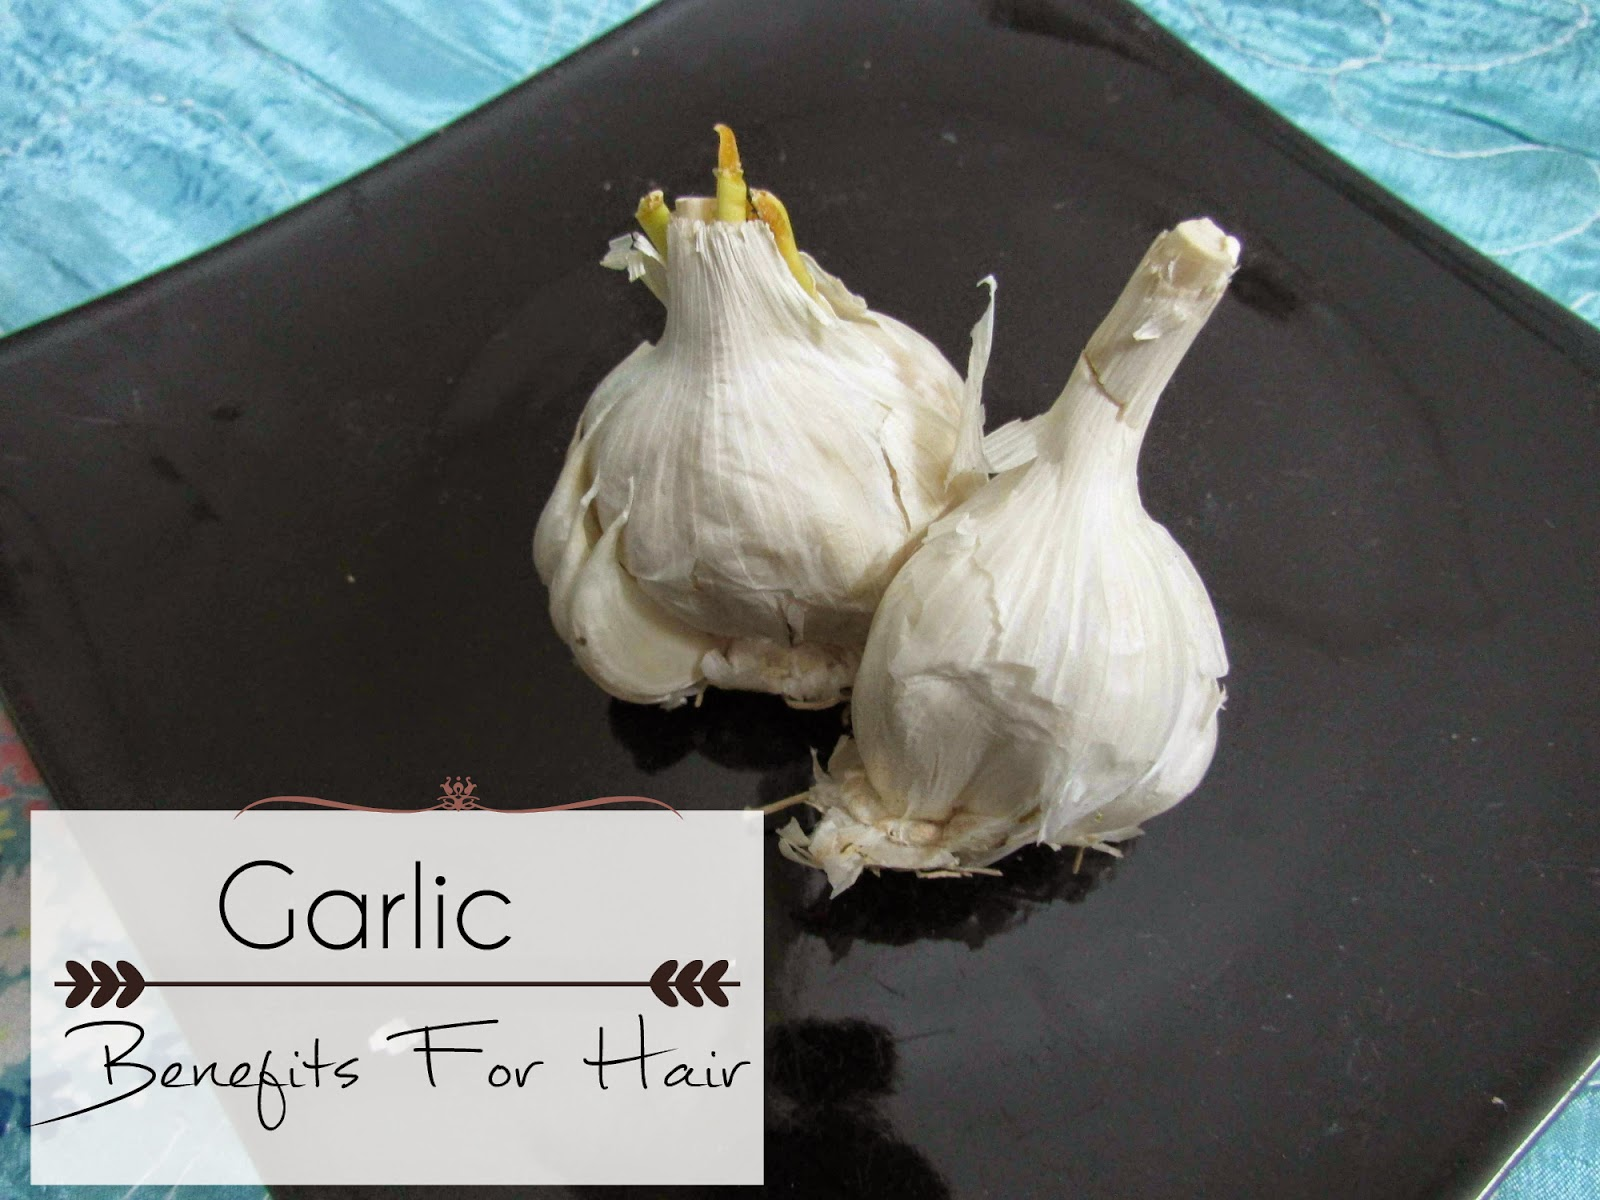 garlic hair benefits, garlic oil, garlic oil for dandruff, garlic oil for hair growth, Home remedies for dandruff, home remedies for itchy scalp, home-remedies, home remedies, scalp infection, garlic, garlic oil, garlic oil for dandruff, garlic oil for hair growth, Home remedies for dandruff, home remedies for itchy scalp, home-remedies, how to treat dandruff at home, itchy scalp,